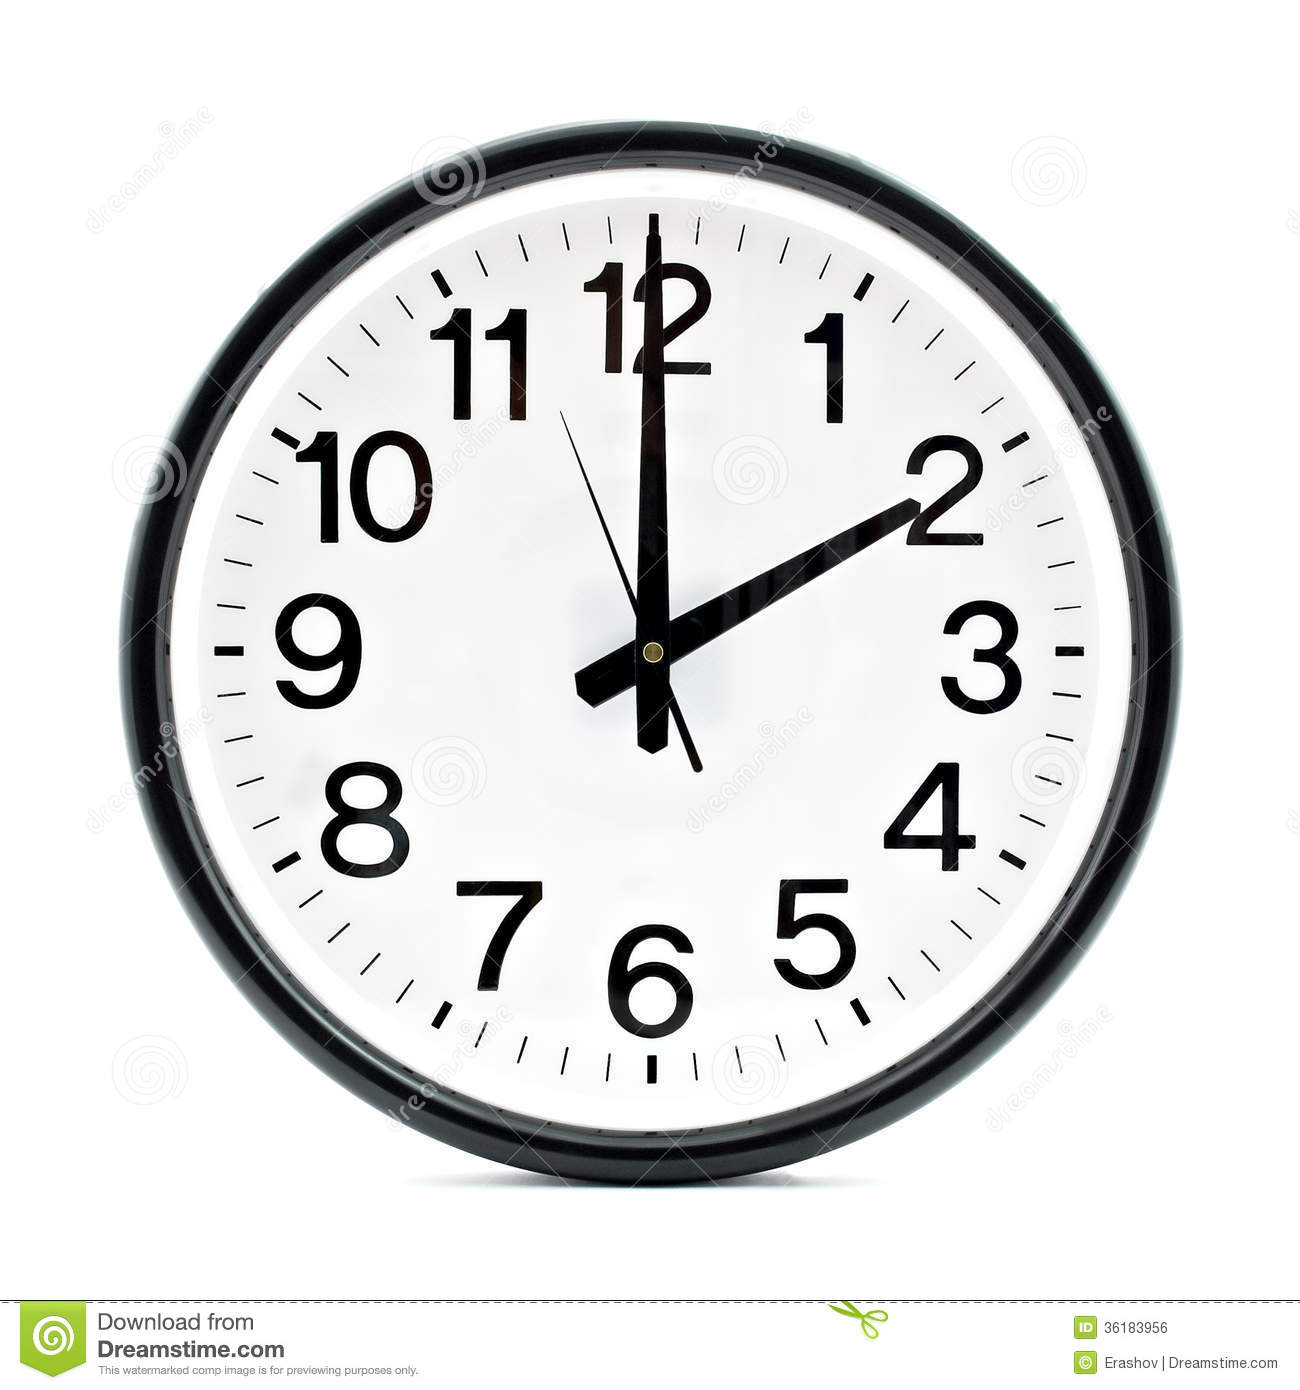 Wall clock clipart - Clipground